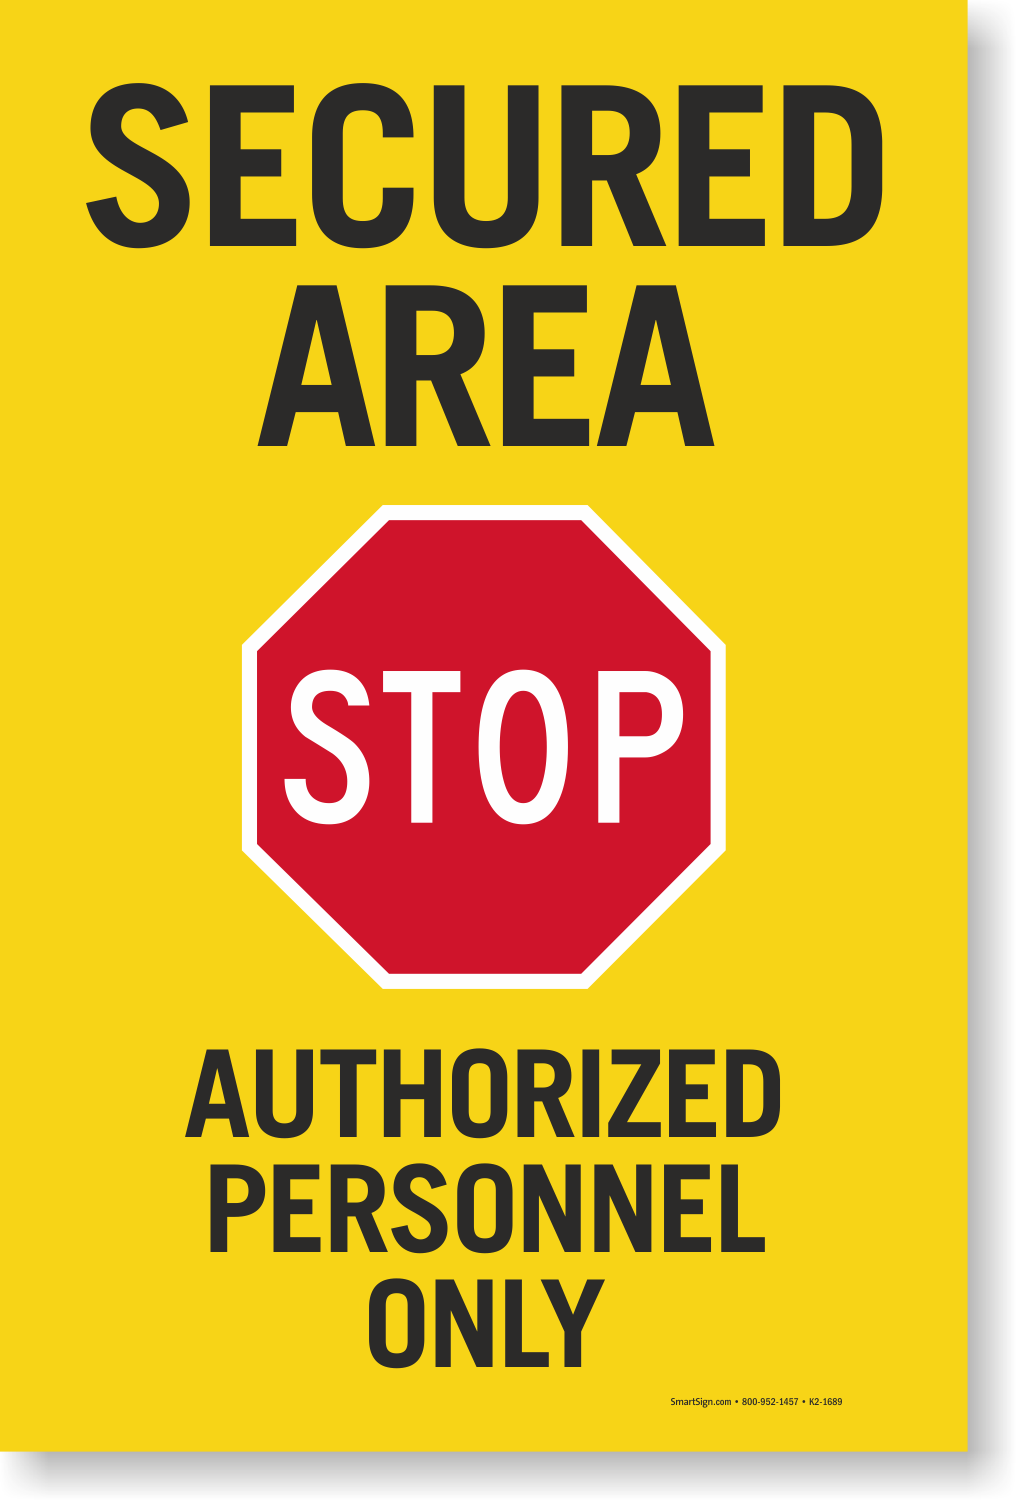 Secured Area Stop Authorized Personnel Sign Panel